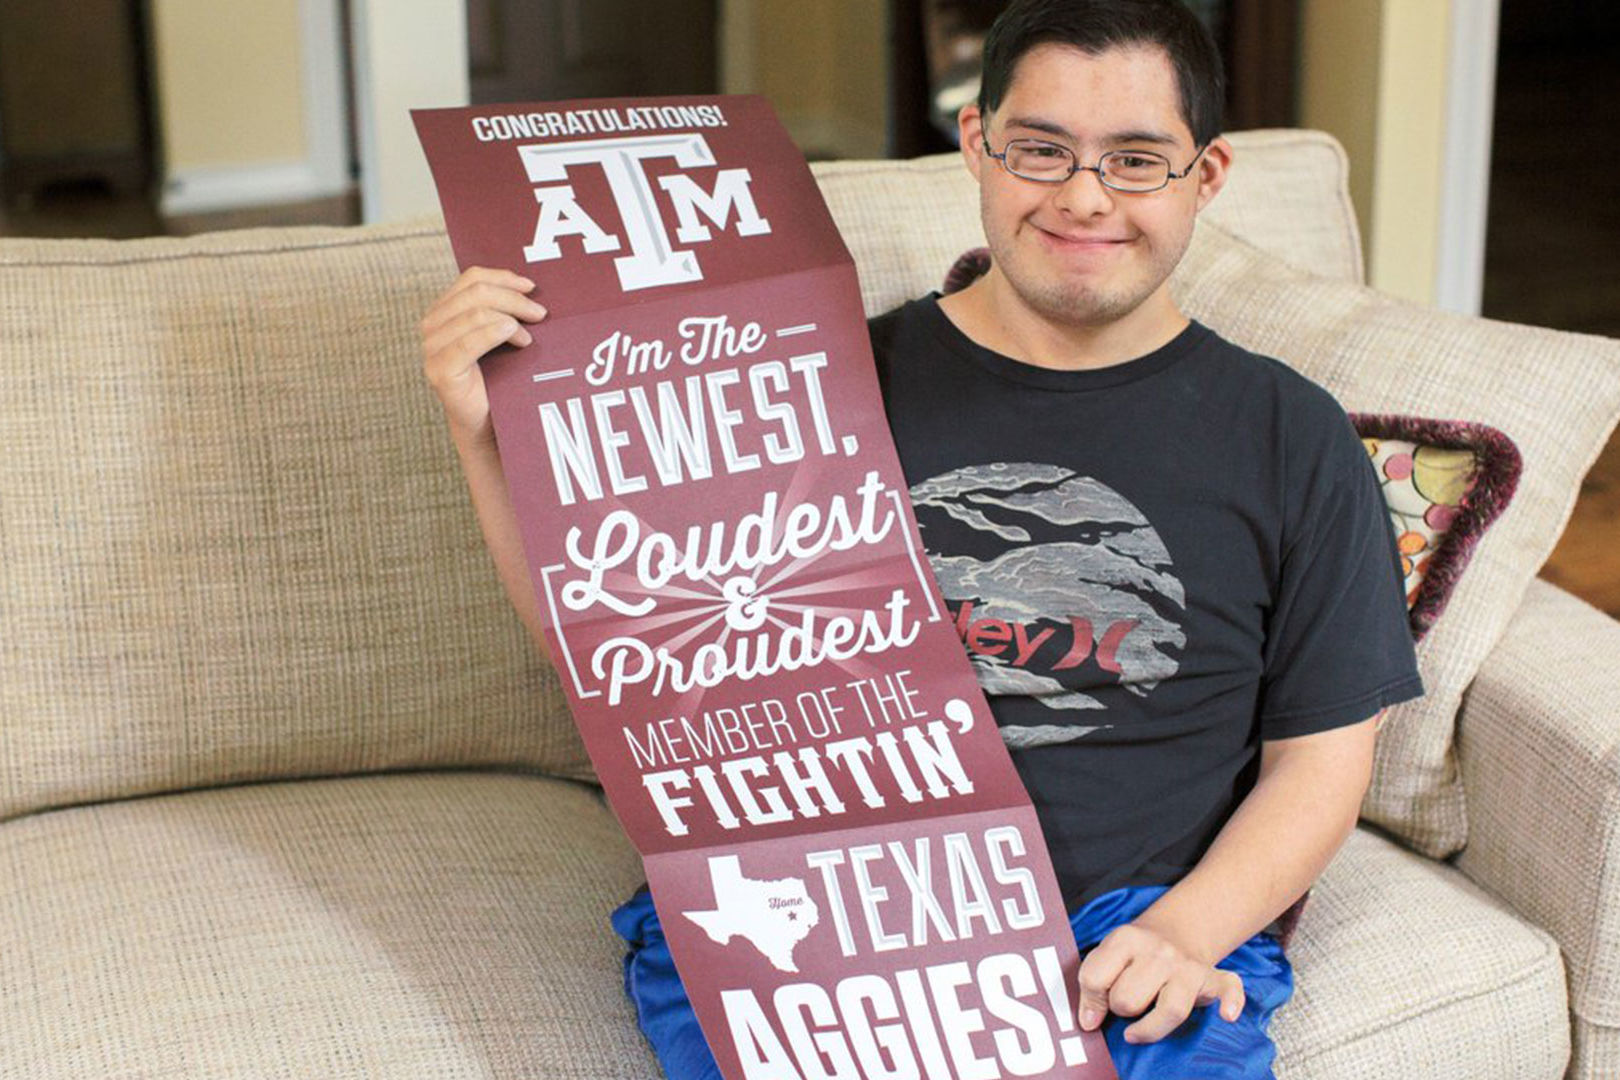 WATCH: Texas A&M Launches Texas' First 4-Year College Program for Students with Disabilities